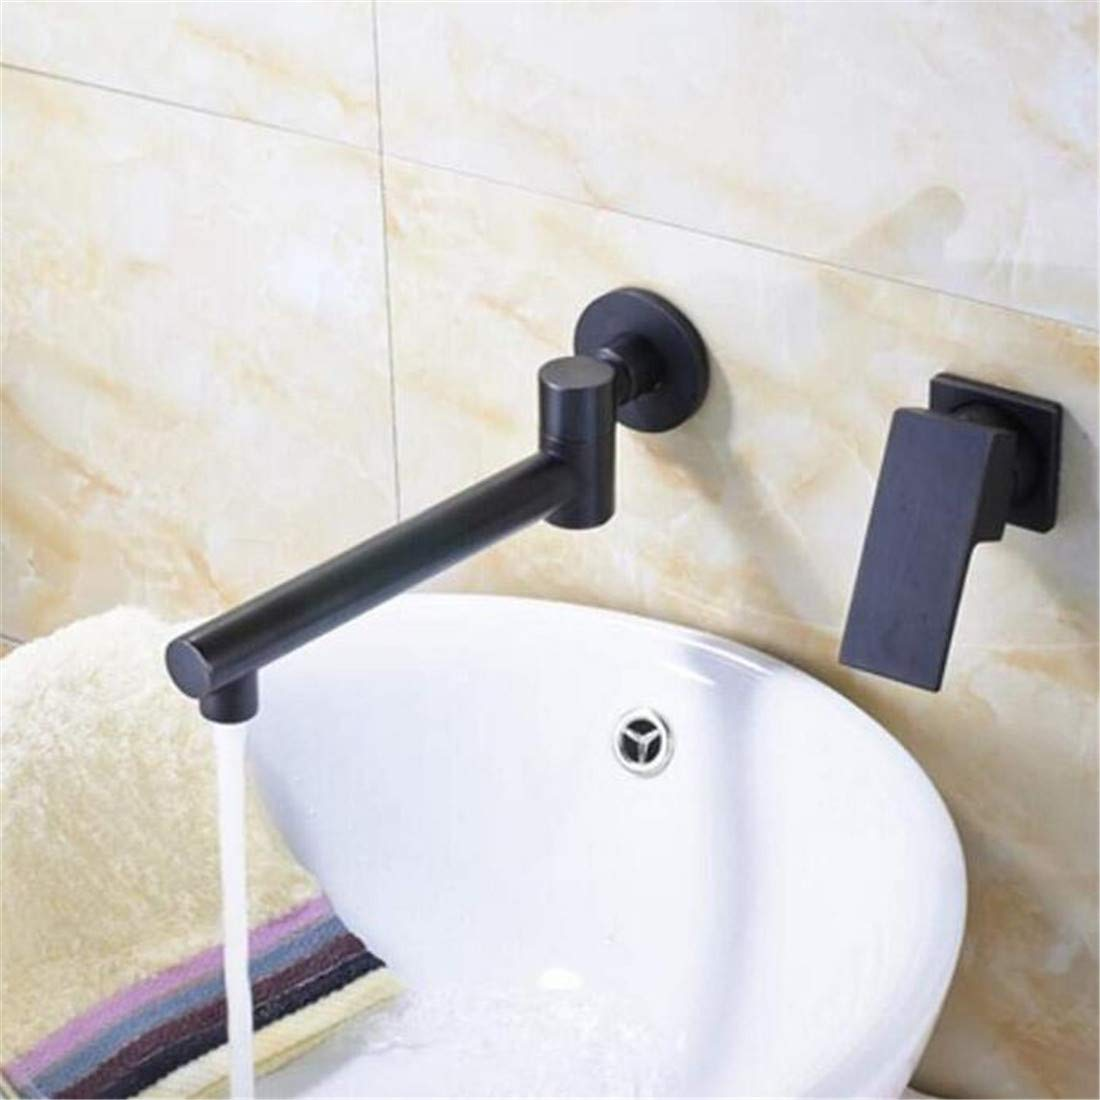 Faucet Chrome Single Handle Contemporary Kitchen Faucet Design Oil Rubbed Bronze Bathroom Countertop Faucet with Hot Cold Water Faucet